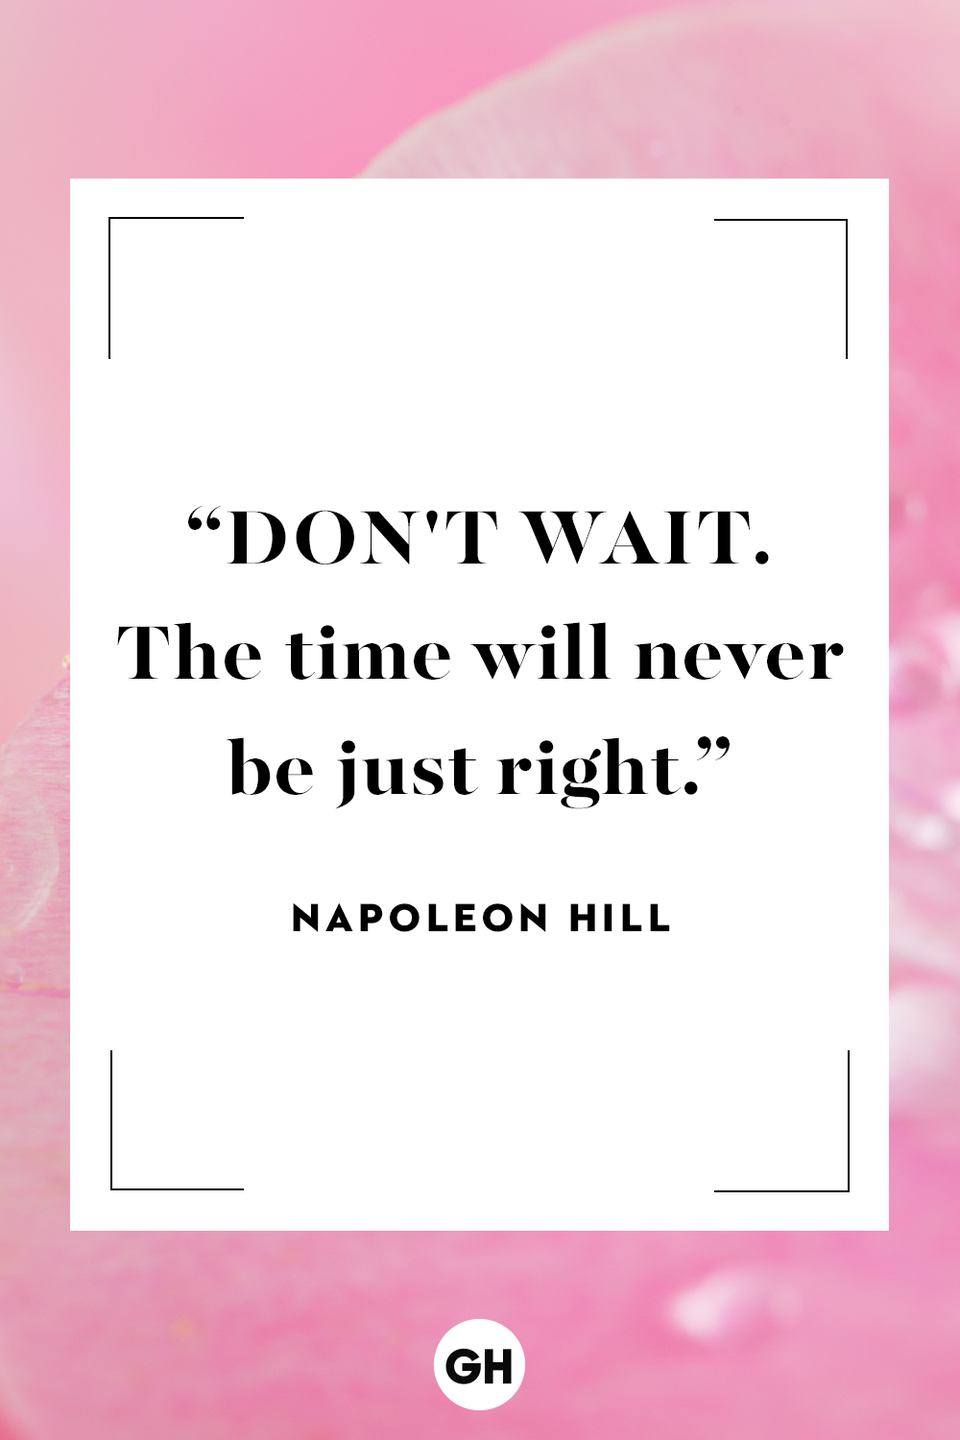 <p>Don't wait. The time will never be just right.</p>